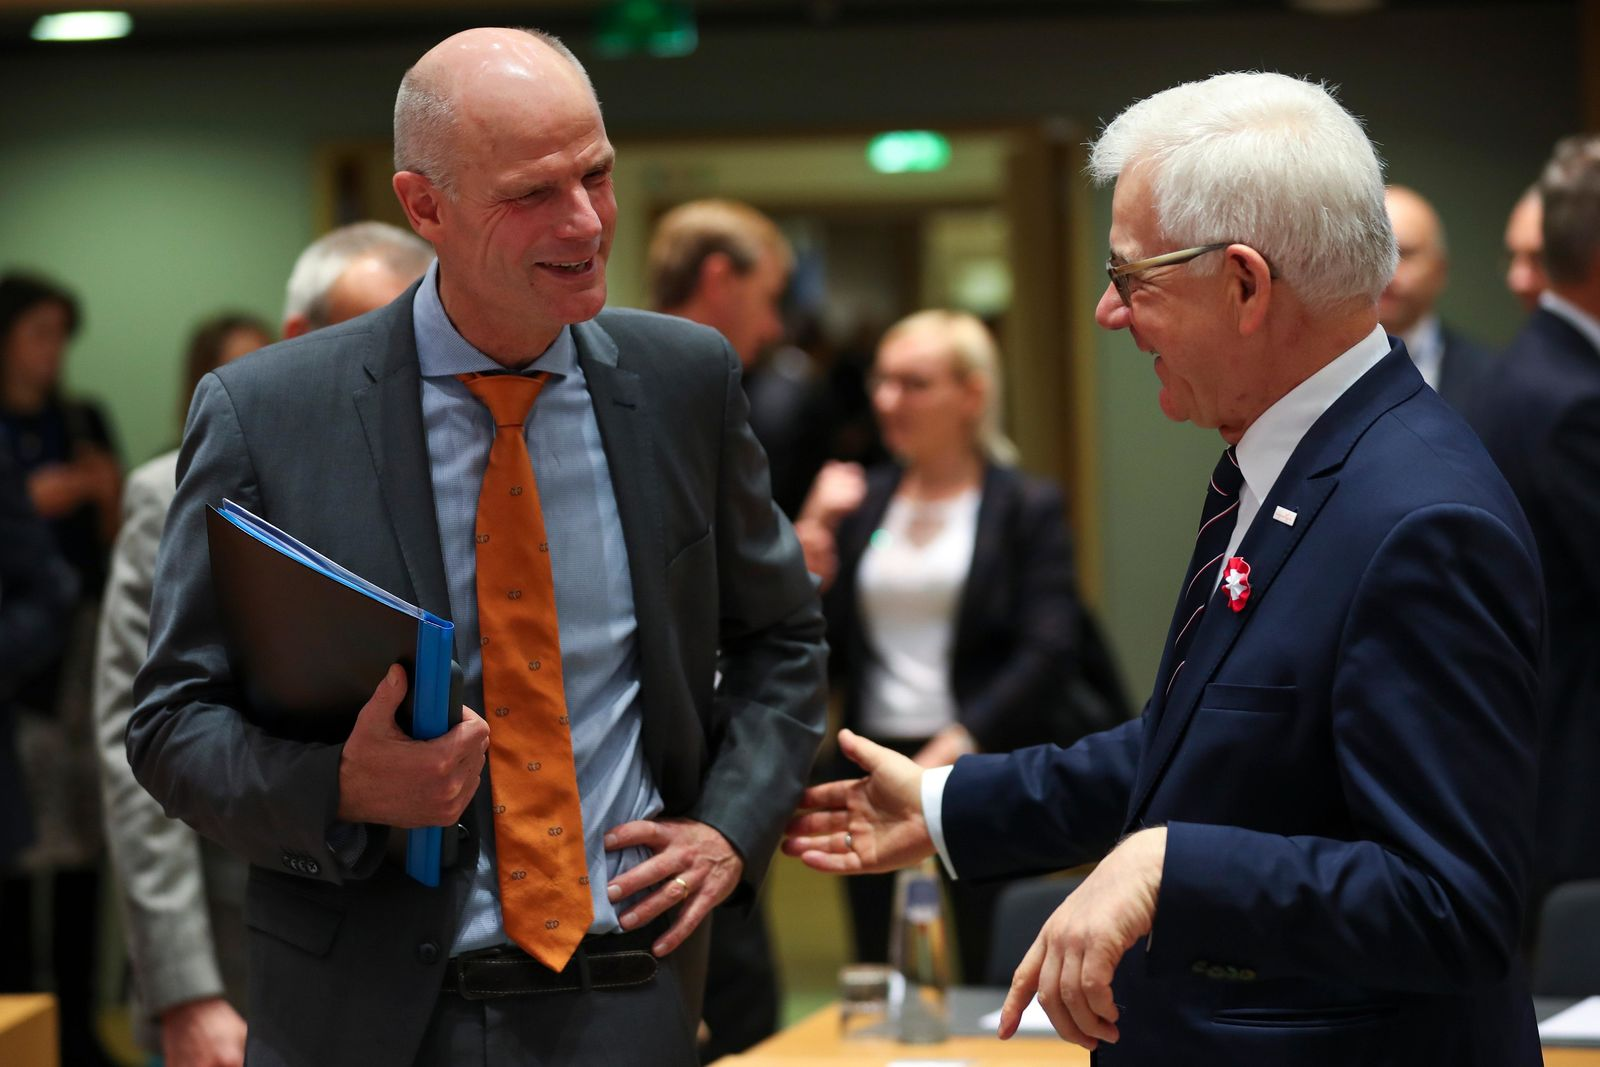 Dutch Foreign Minister Stef Blok, left, talks to Polish Foreign Minister Jacek Czaputowicz during an European Foreign Affairs Ministers meeting at the Europa building in Brussels, Monday, Nov. 11, 2019. (AP Photo/Francisco Seco)